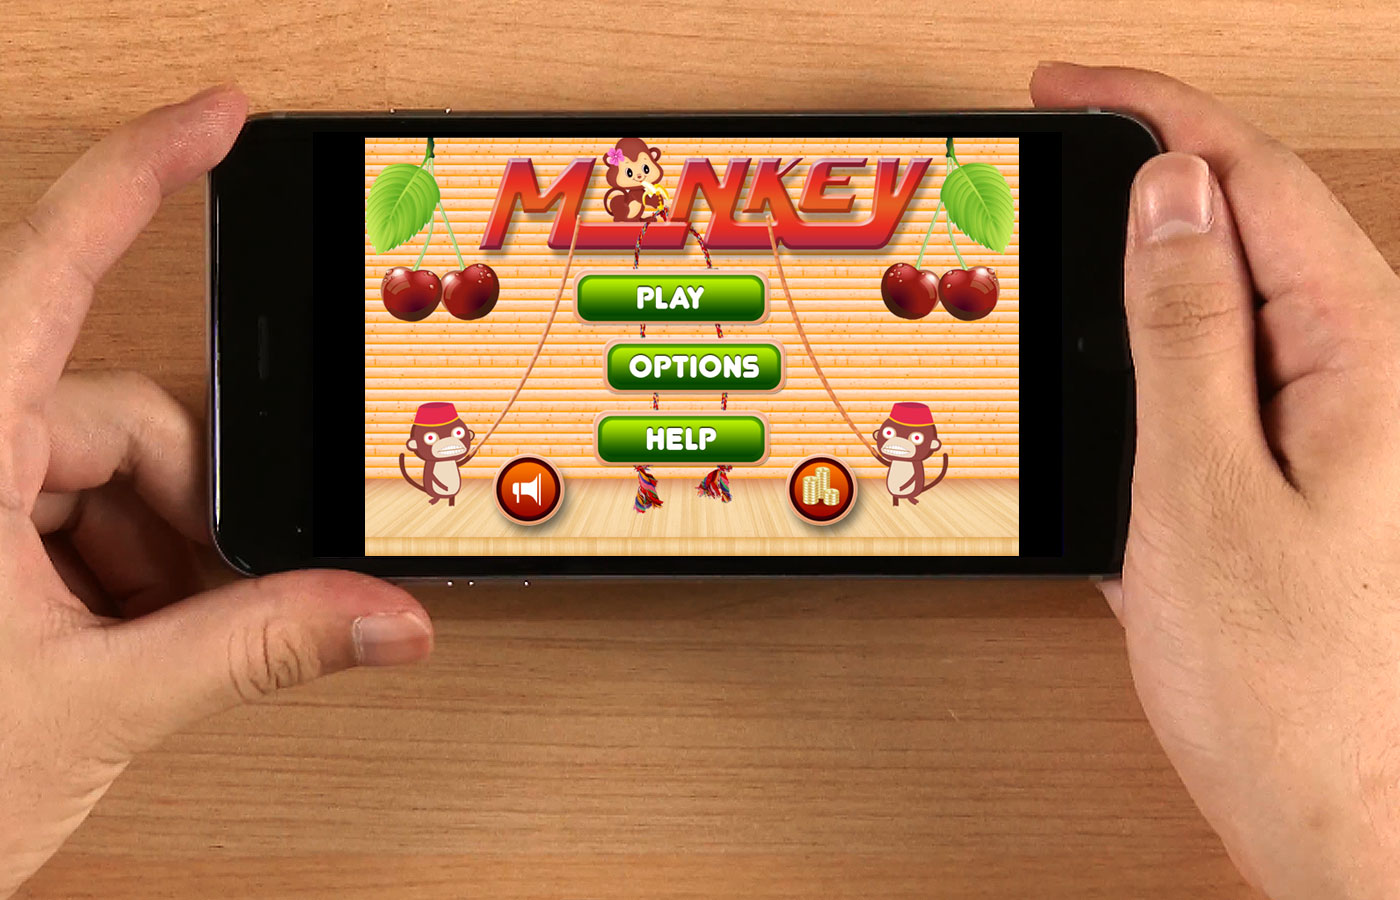 Hit the Monkey Game UI Kit for iPhone 6